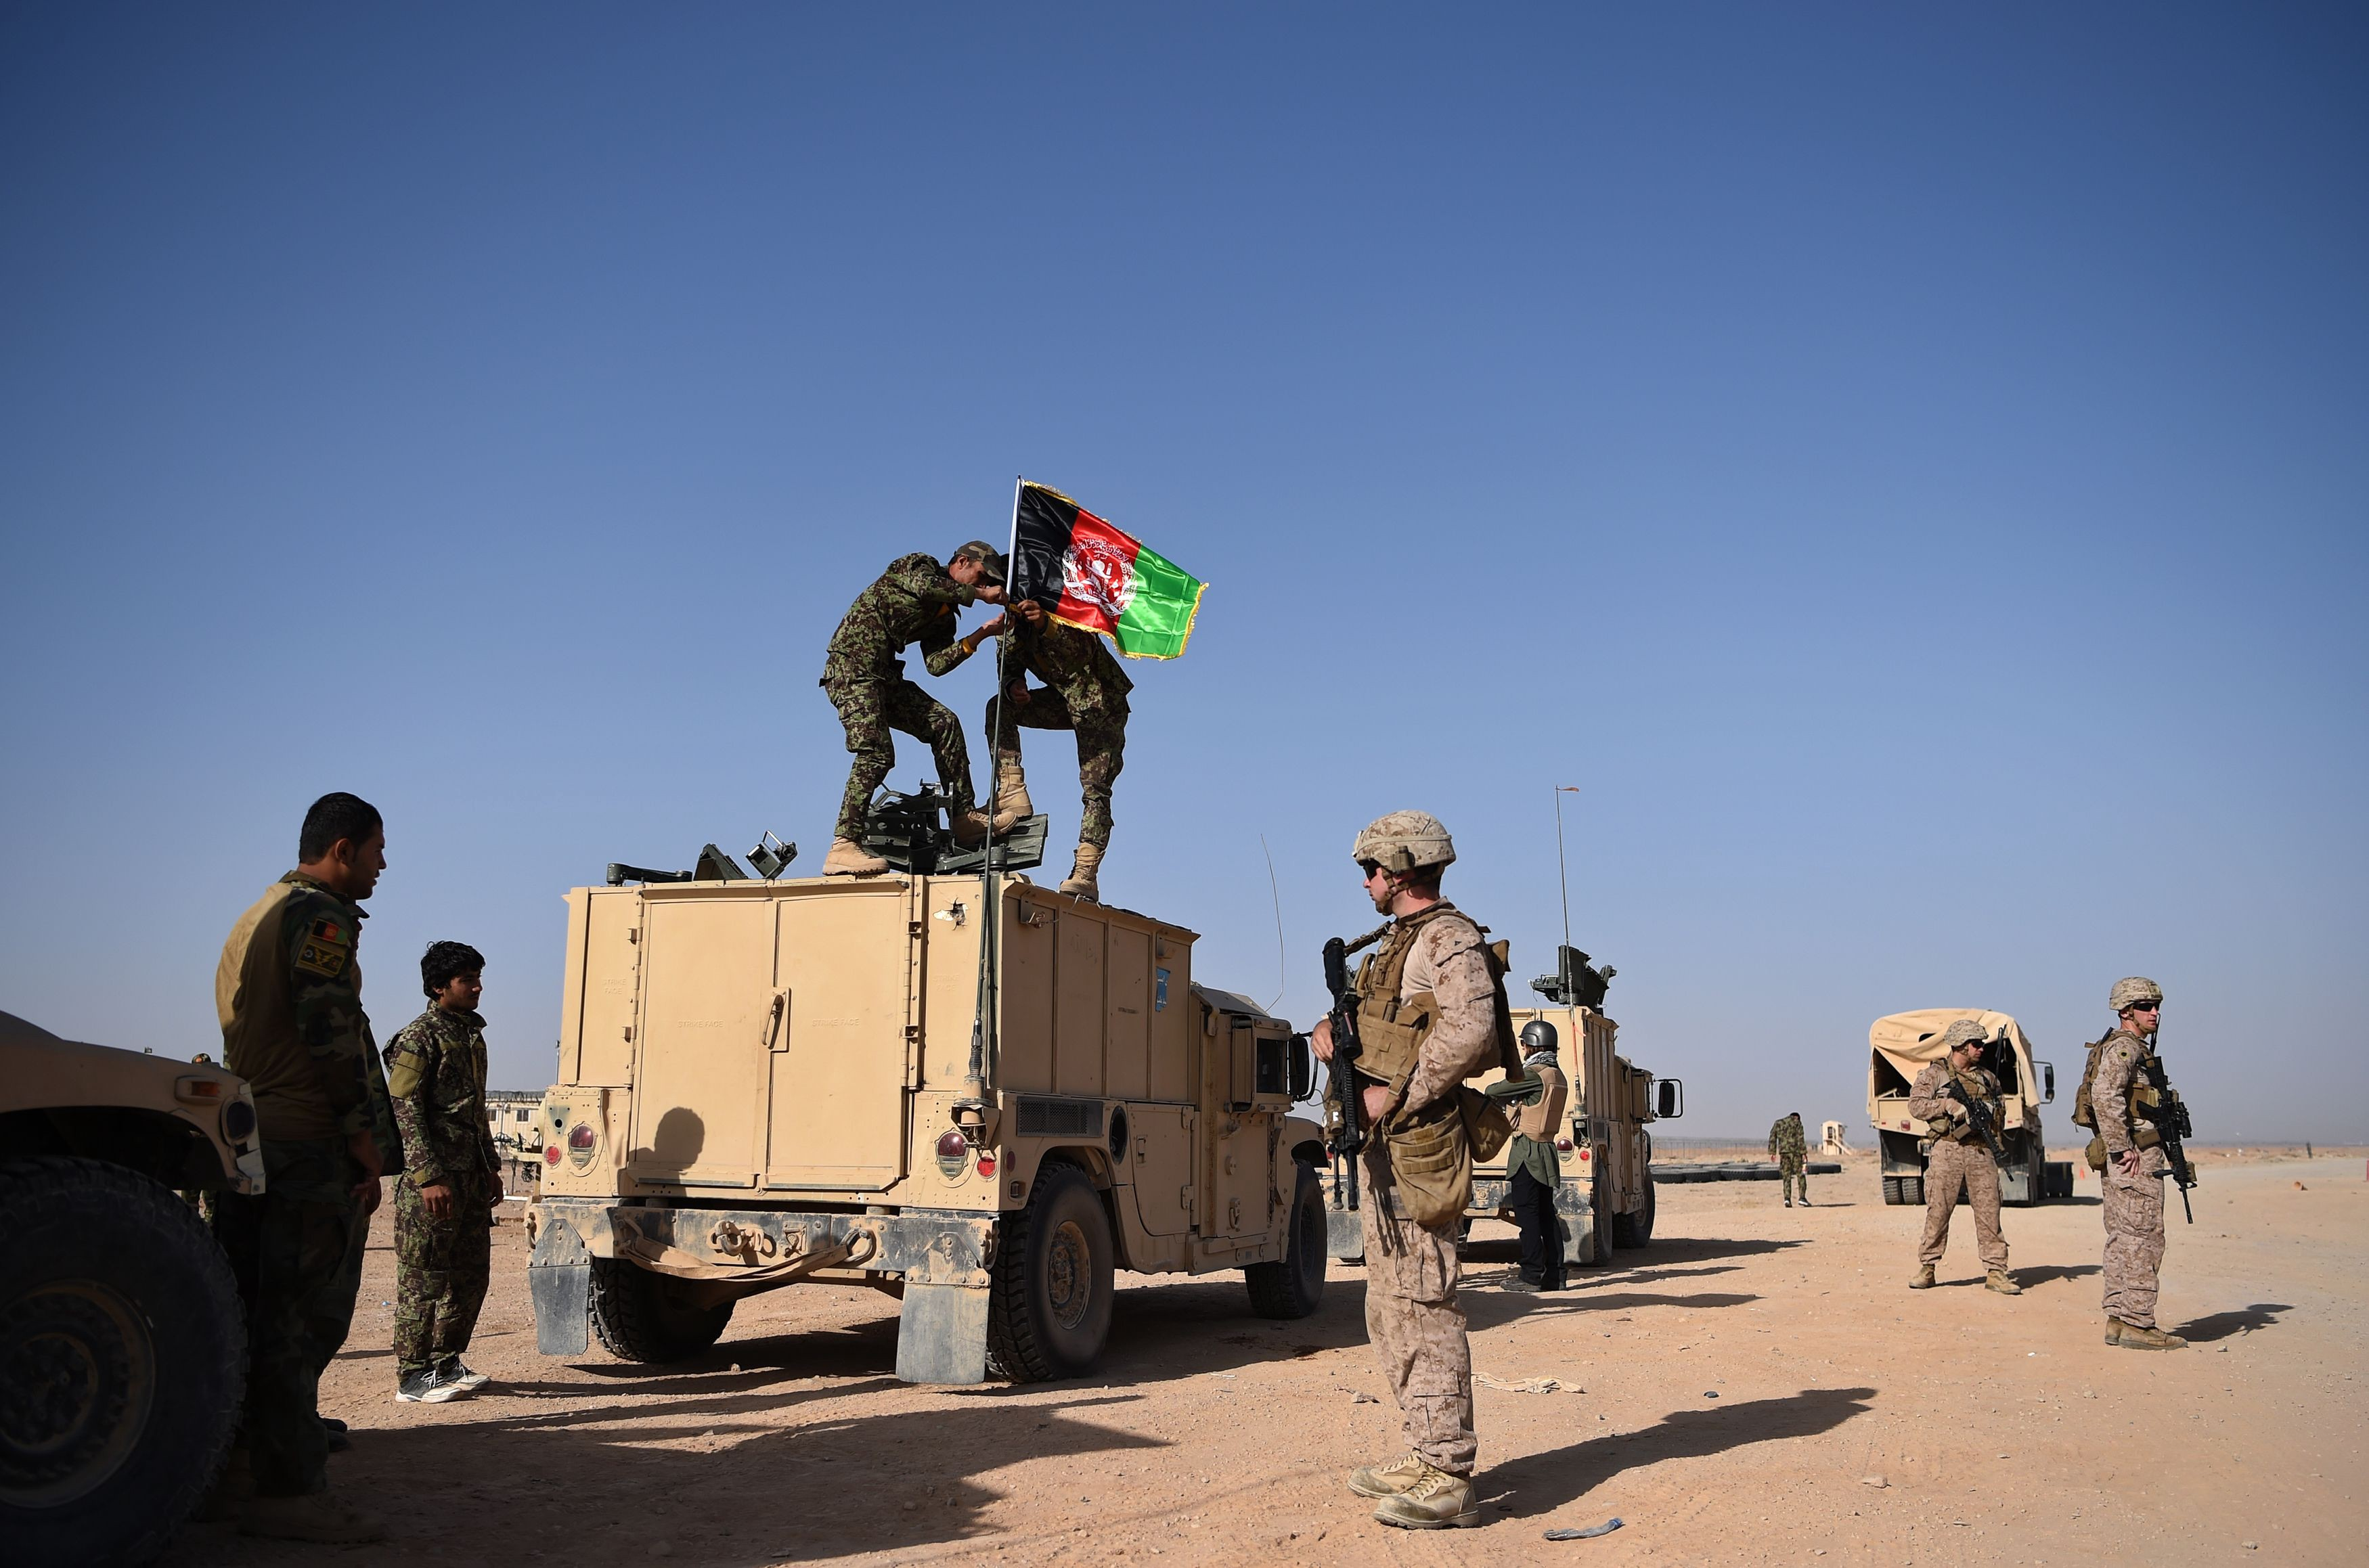 A US Marine looks on as two Afghan National Army soldiers stand in the desert on an armoured vehicle and raise the Afghan National flag.